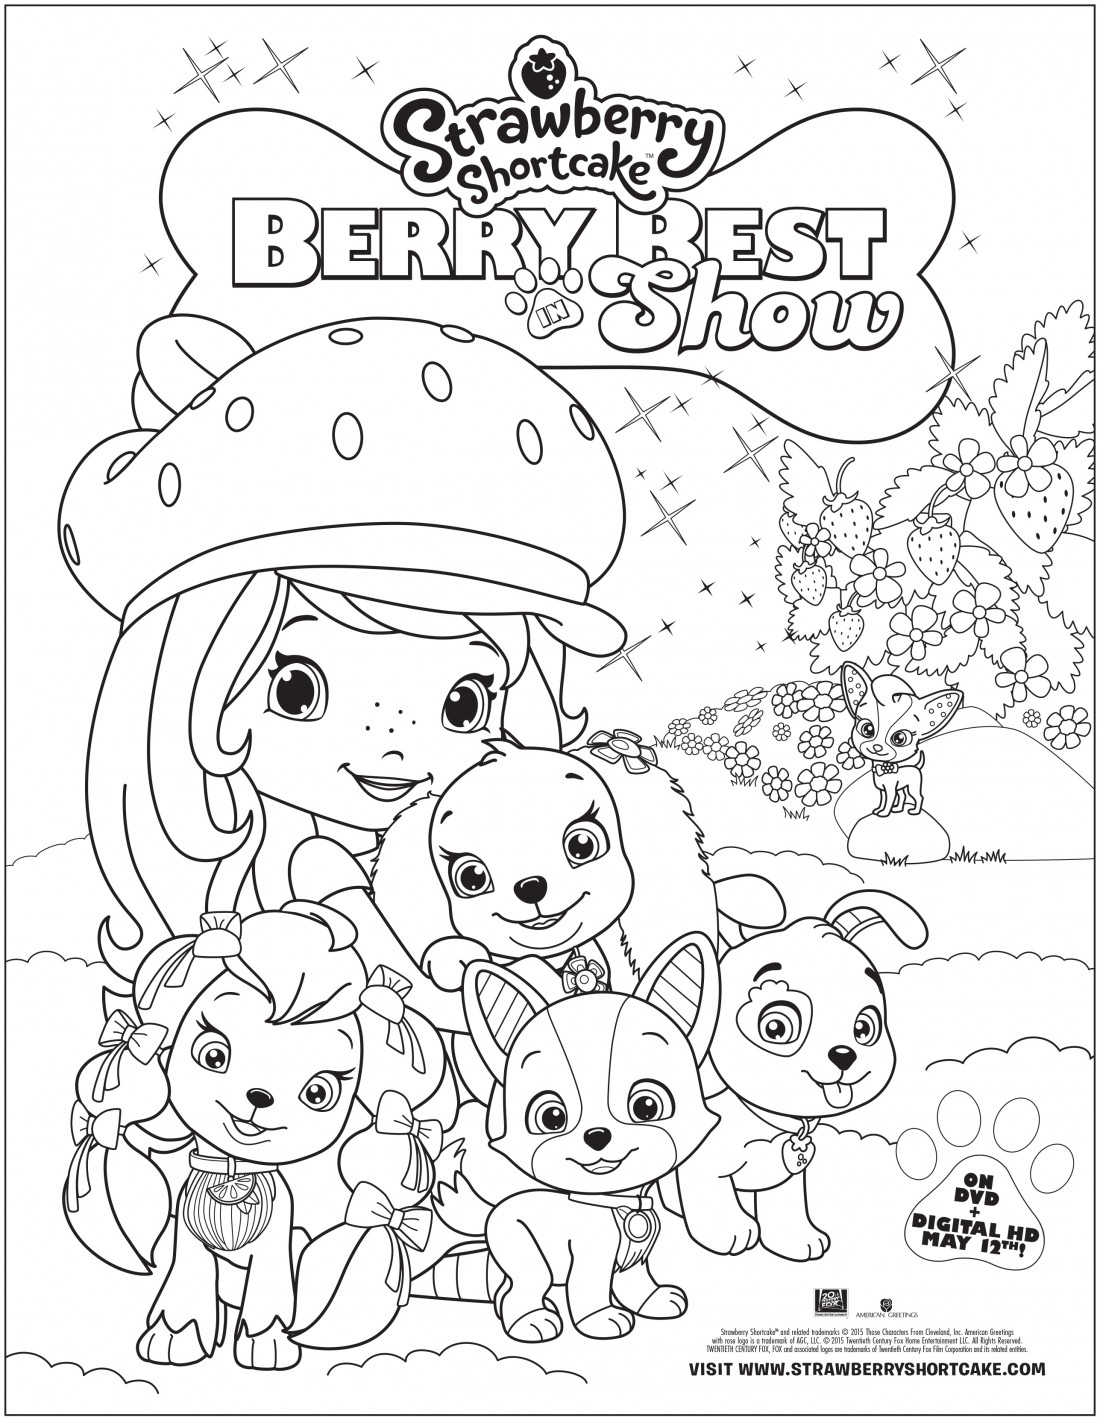 1430863280-FOX 1299 SS Berry Best in Show  Coloring PageWith Format Messaging